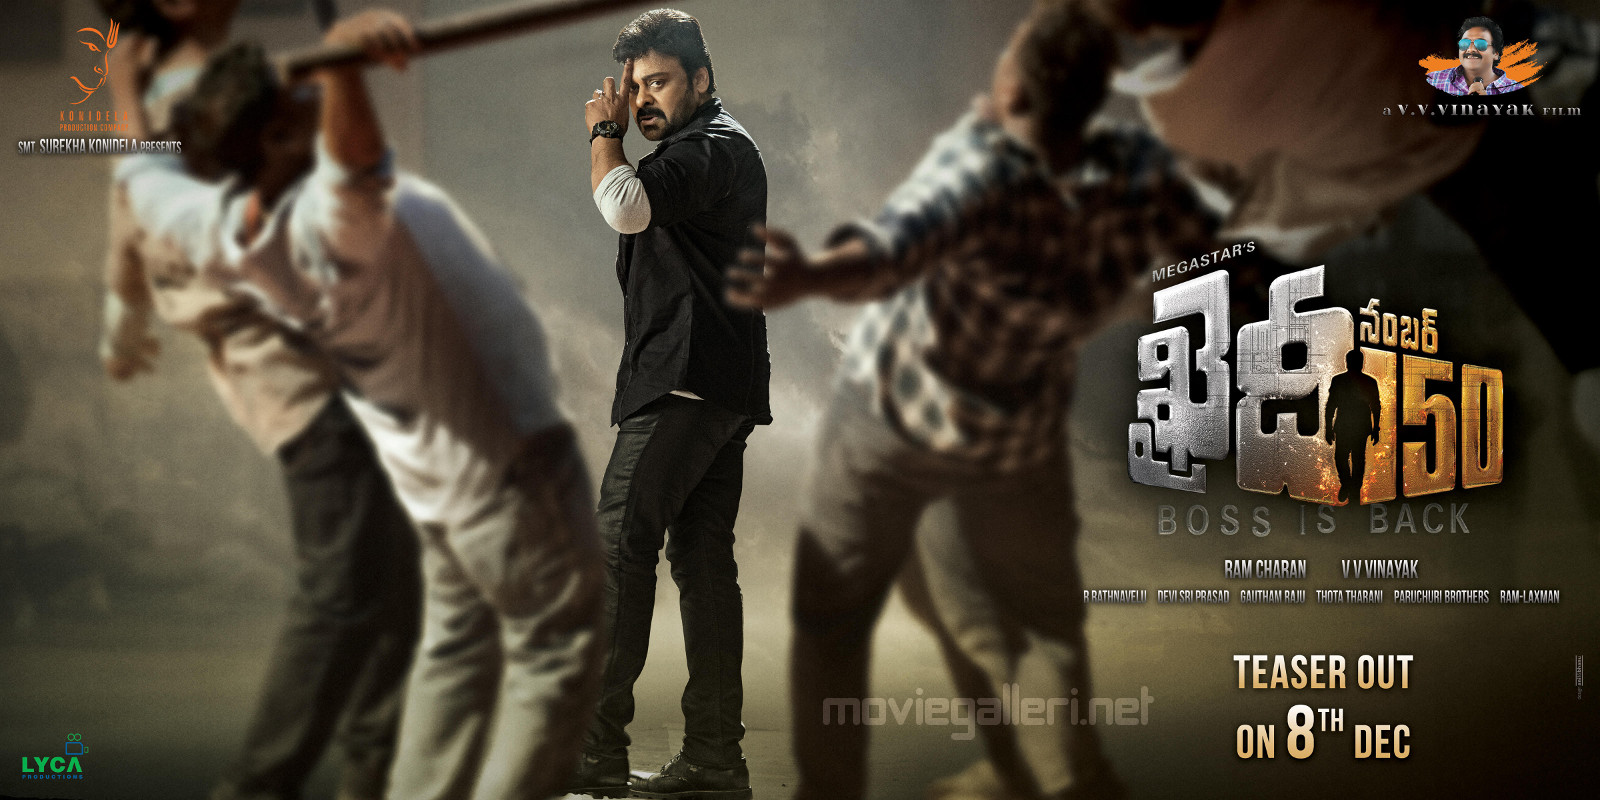 Chiranjeevi's Khaidi No. 150 Movie Teaser Releasing on Dec 8th Wallpaper